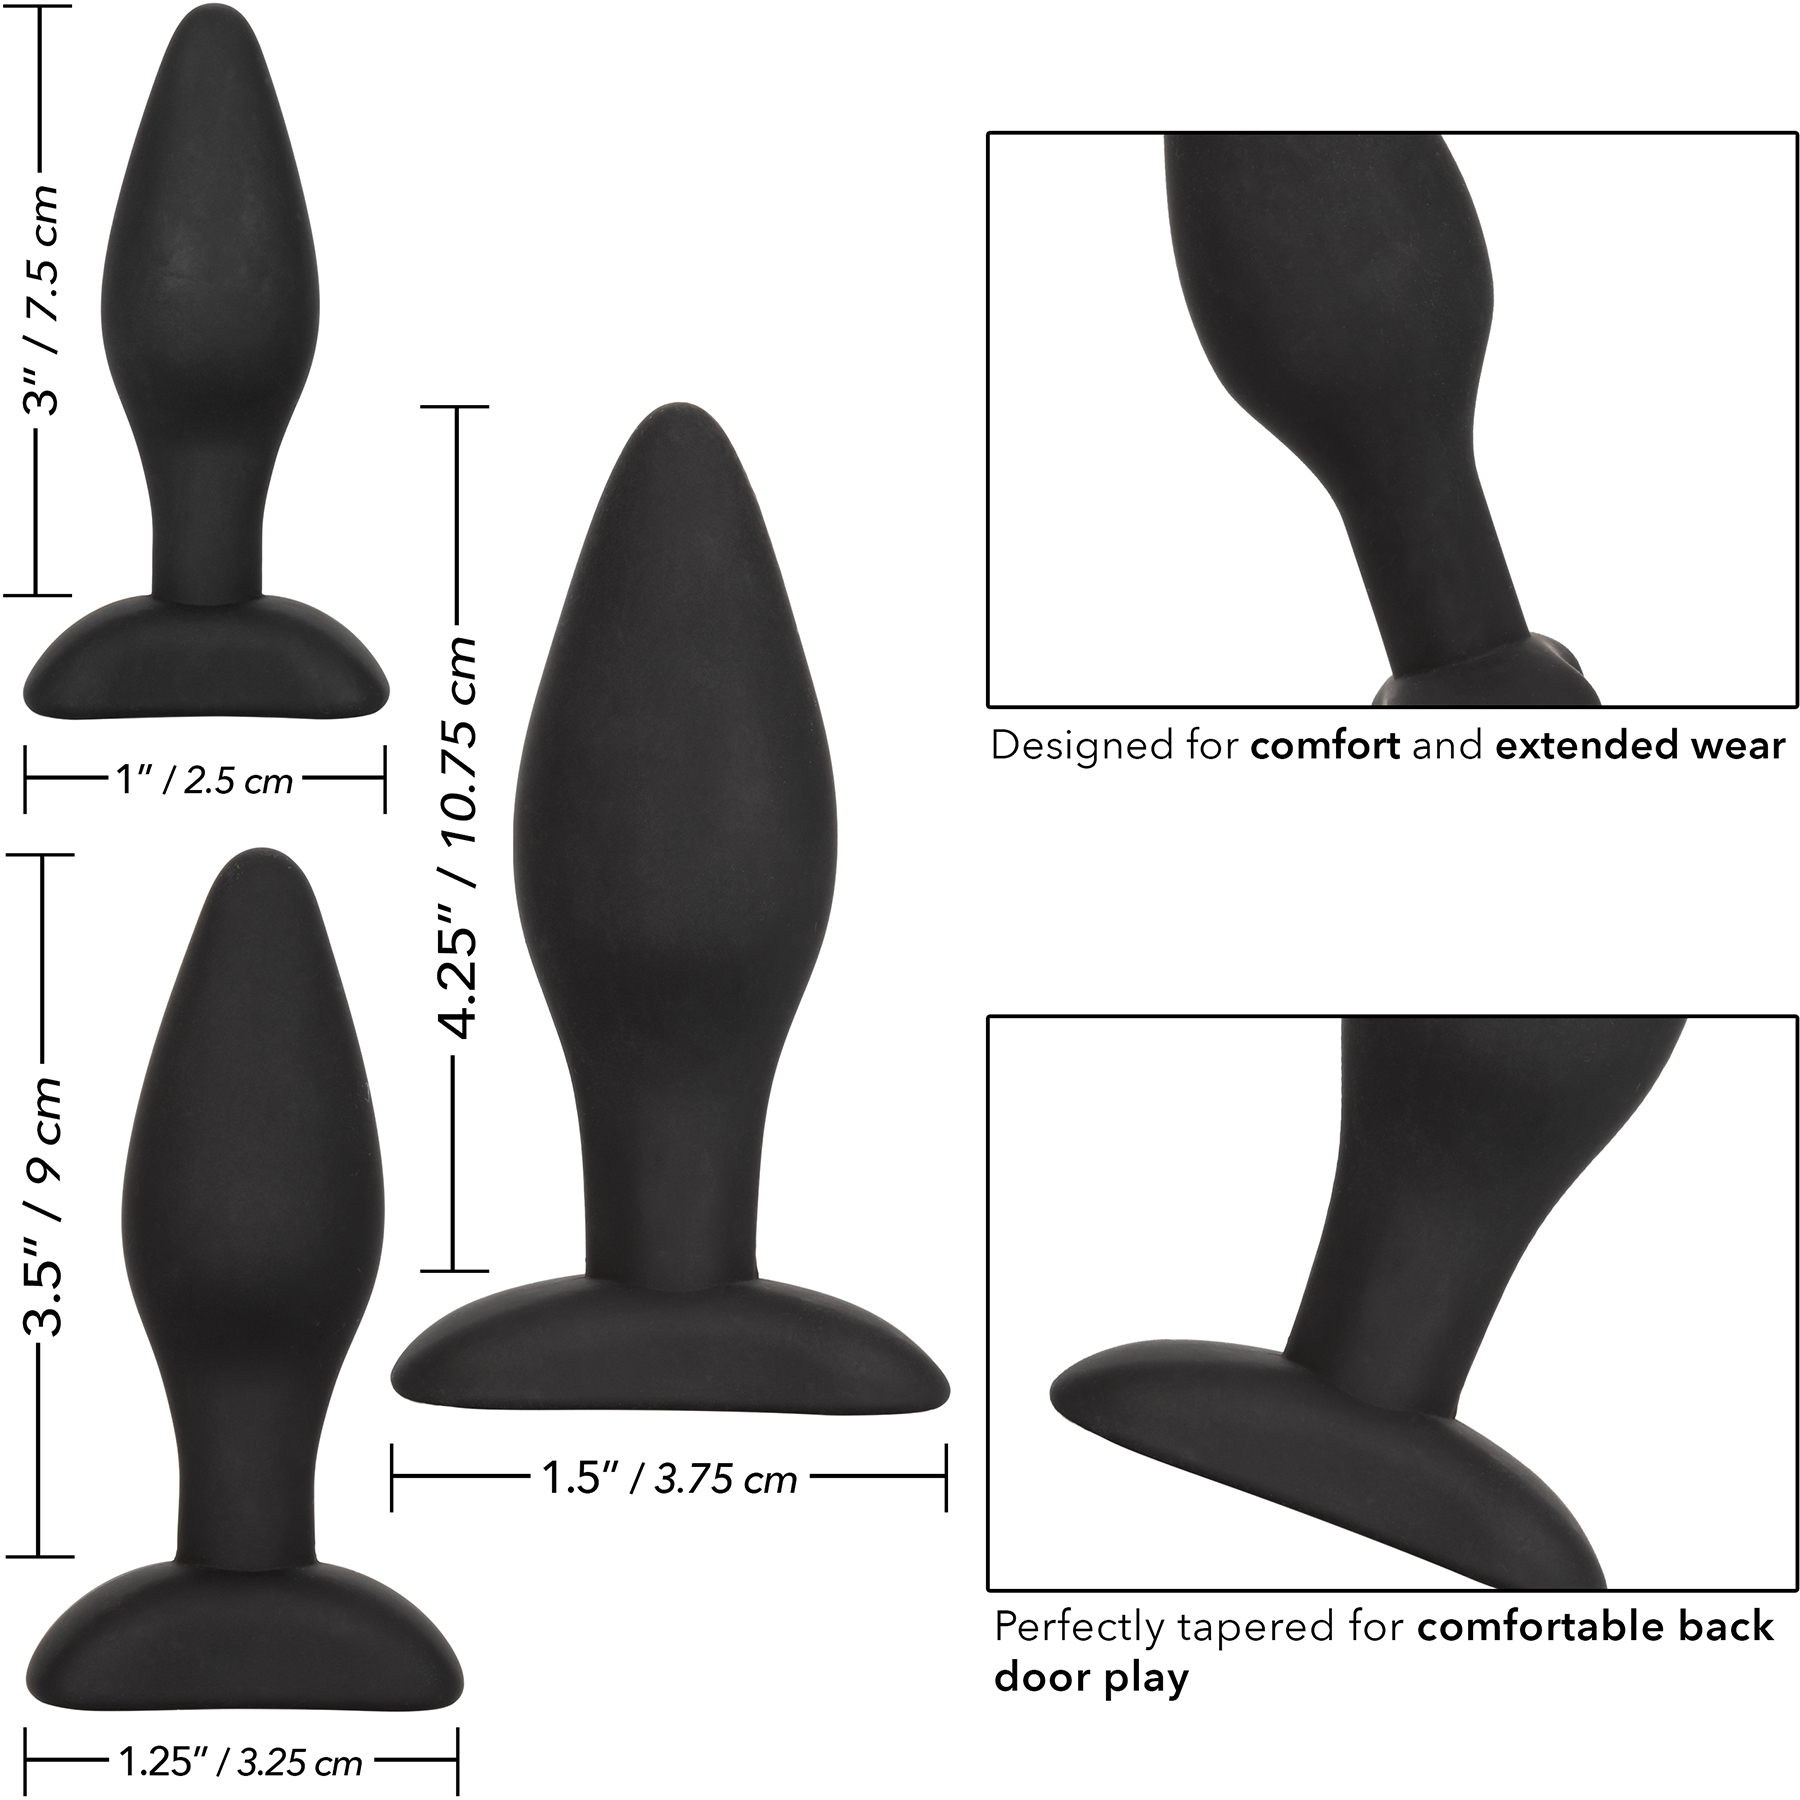 Silicone Anal Exerciser Kit With Three Plugs - Measurements